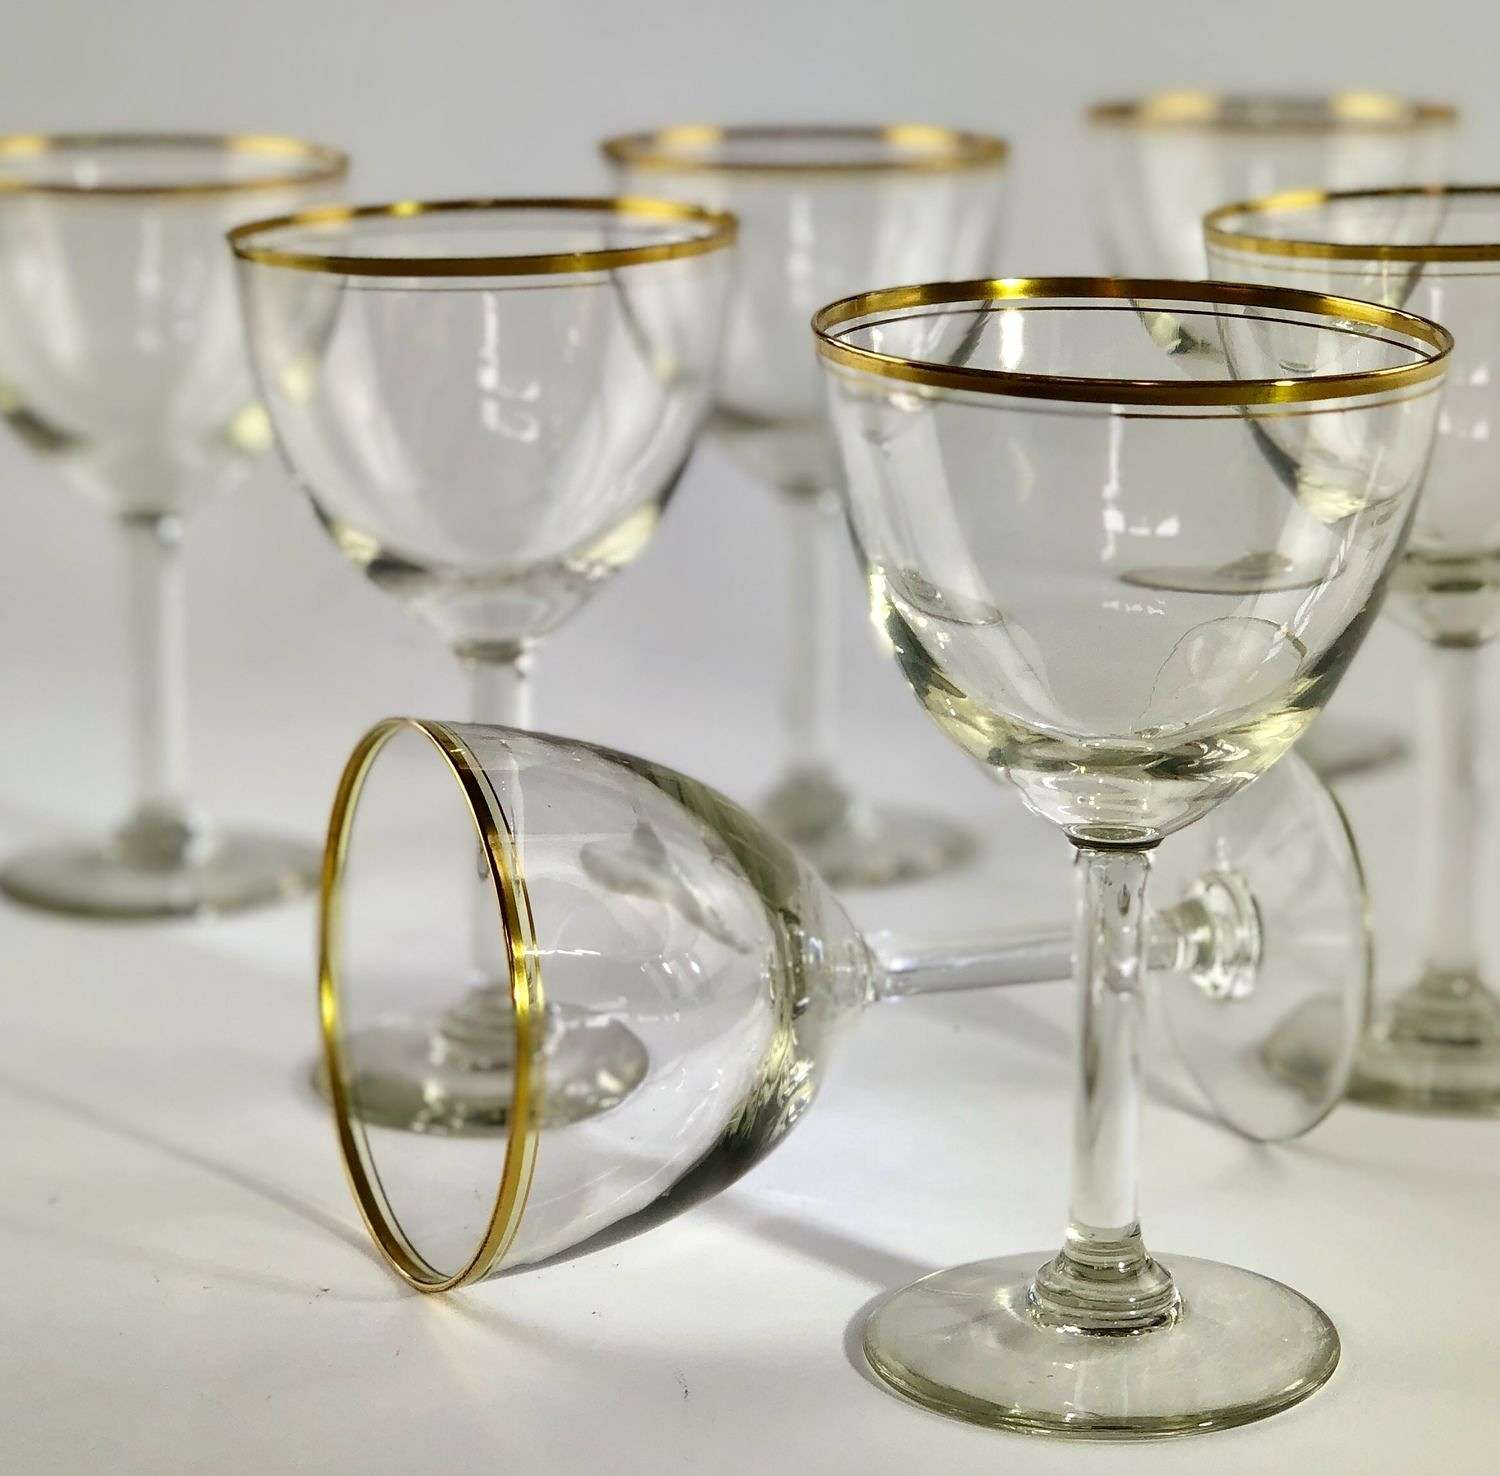 Smart set of 20th Century gold rimmed wine goblets